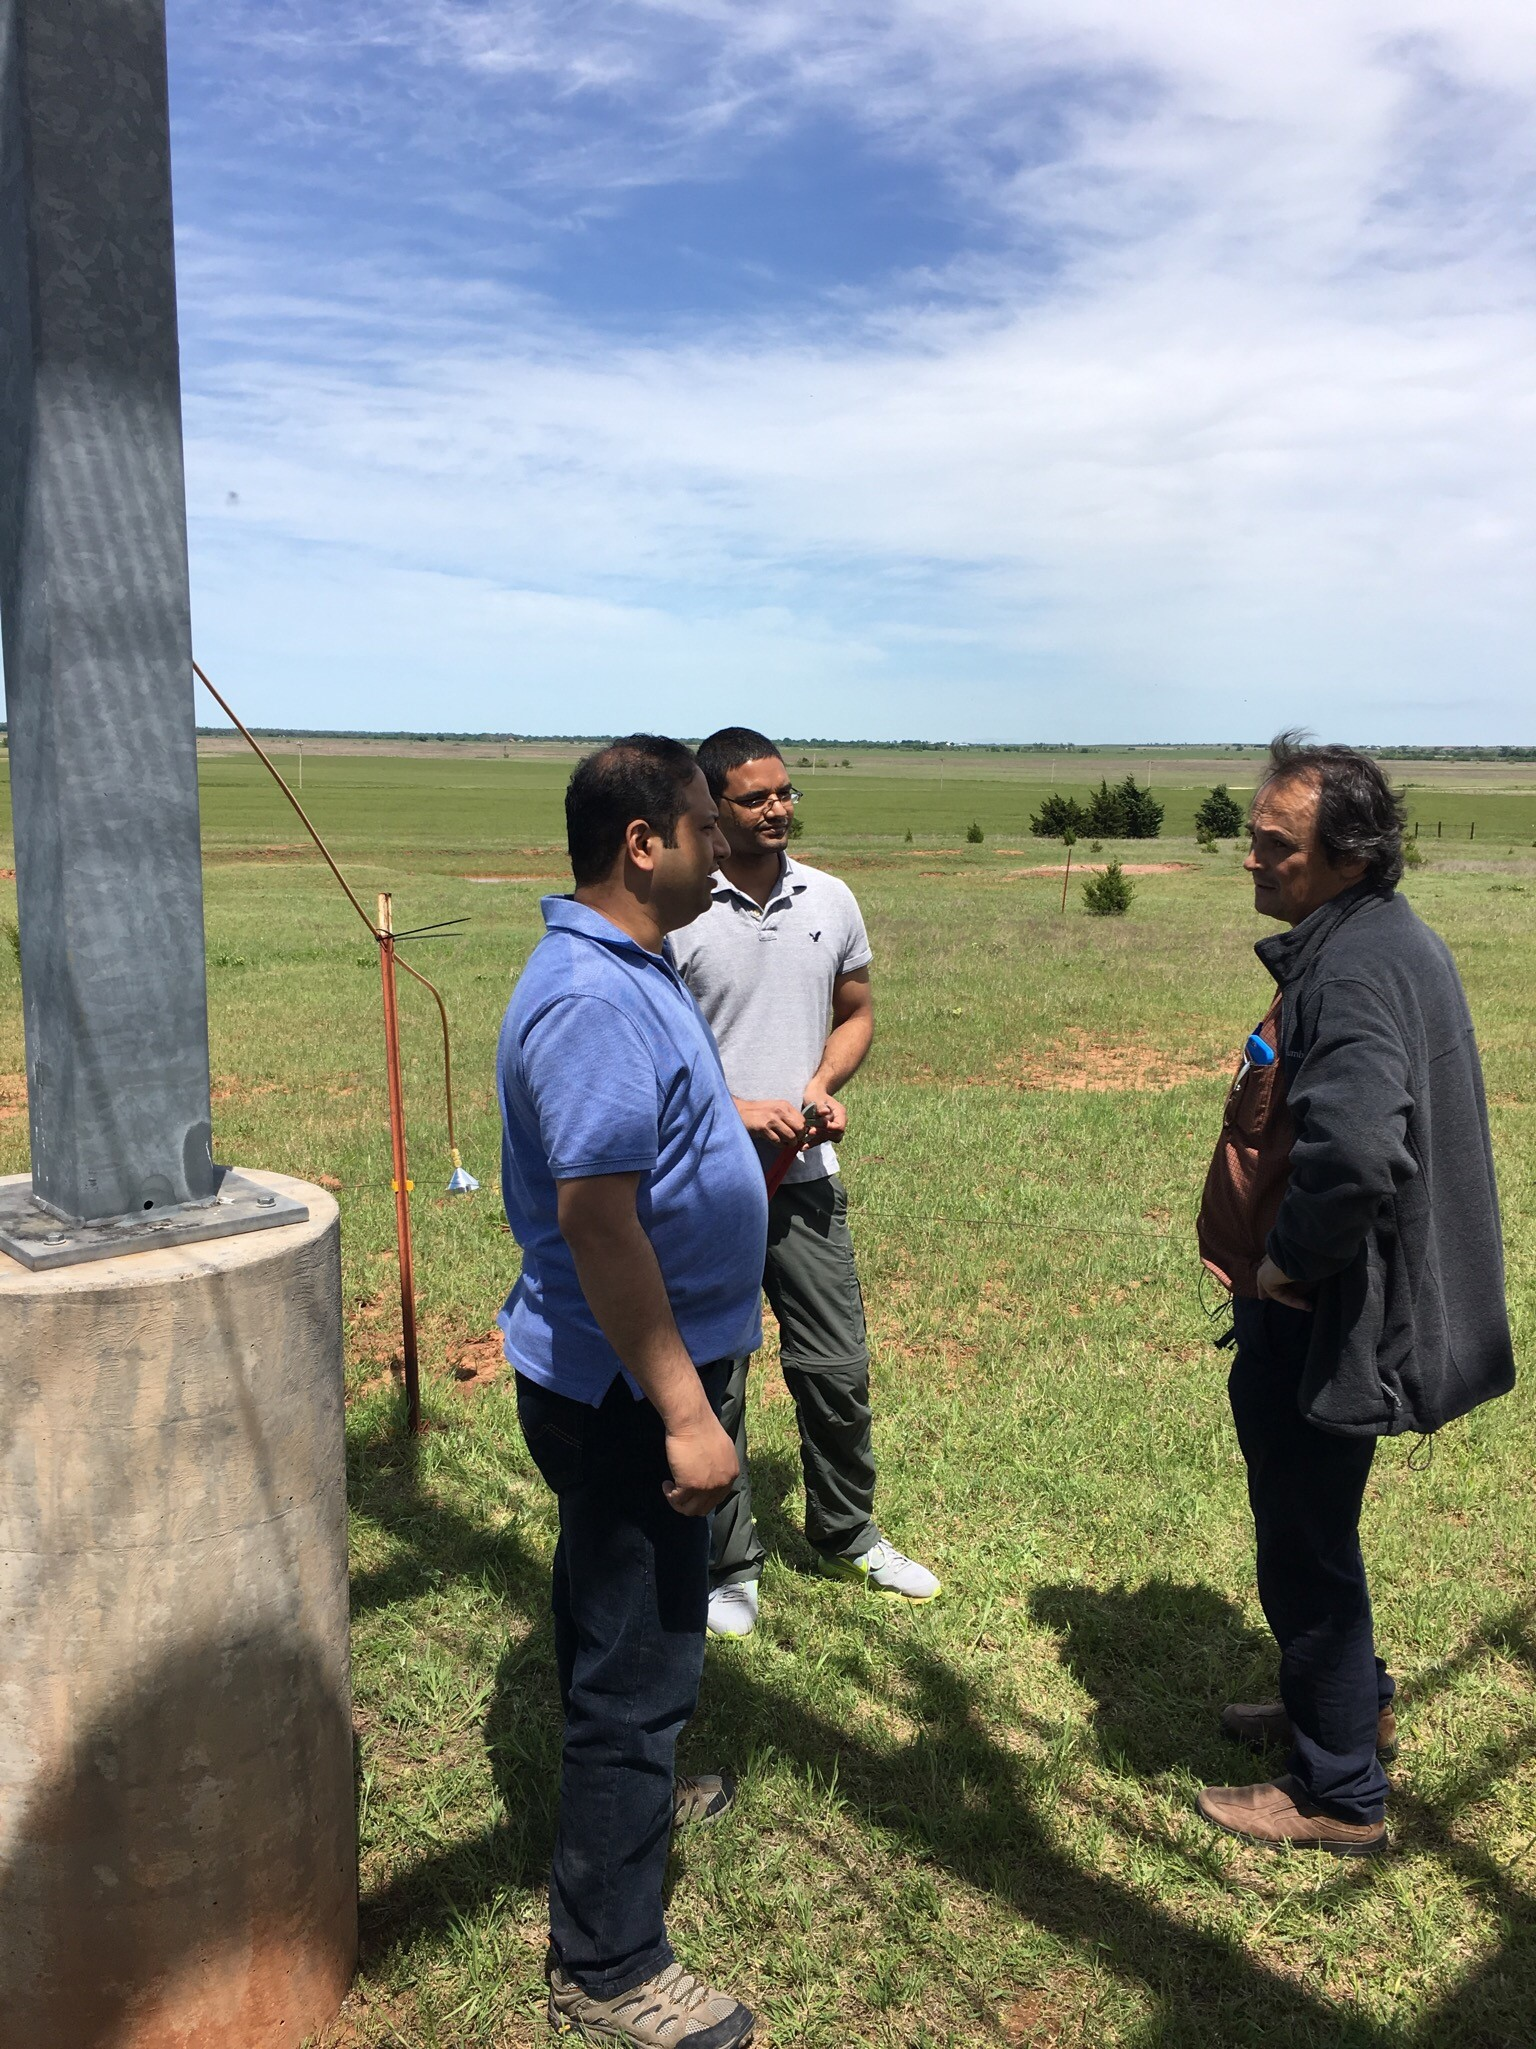 Laskin sometimes ventures out into the field and works closely with observational scientists. Here he is in 2016 at the SGP ARM site in Lamont, Oklahoma, with PNNL colleagues Gourihar Kulkarni, left, and Swarup China, middle. Photo is courtesy of Laskin.